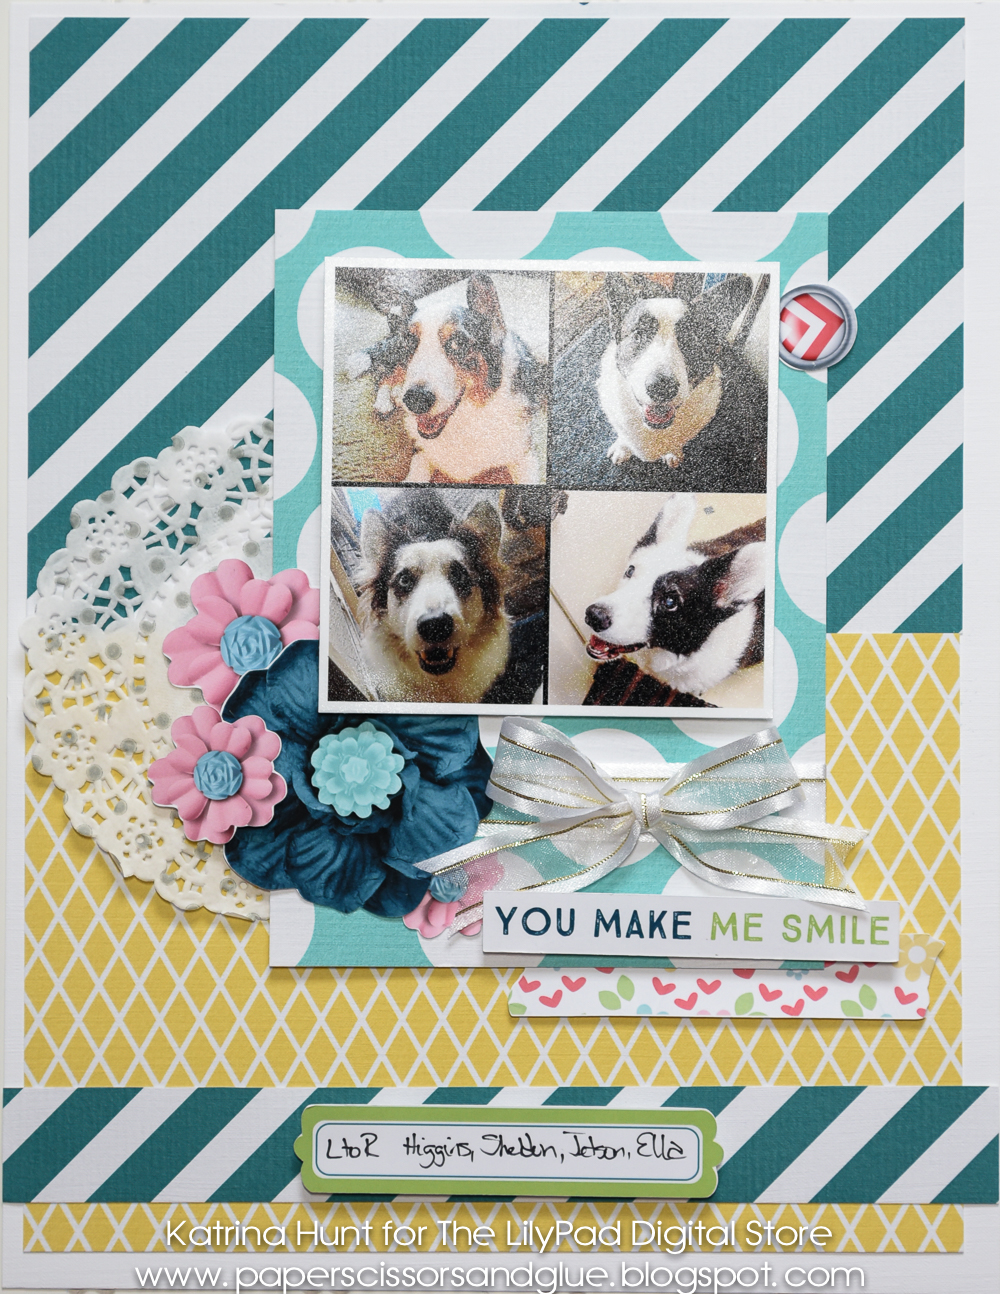 You_Make_Me_Smile_Hybrid_Scrapbook_Layout_The_Lilypad_Becca_Bonneville_Katrina_Hunt_1000Signed-1